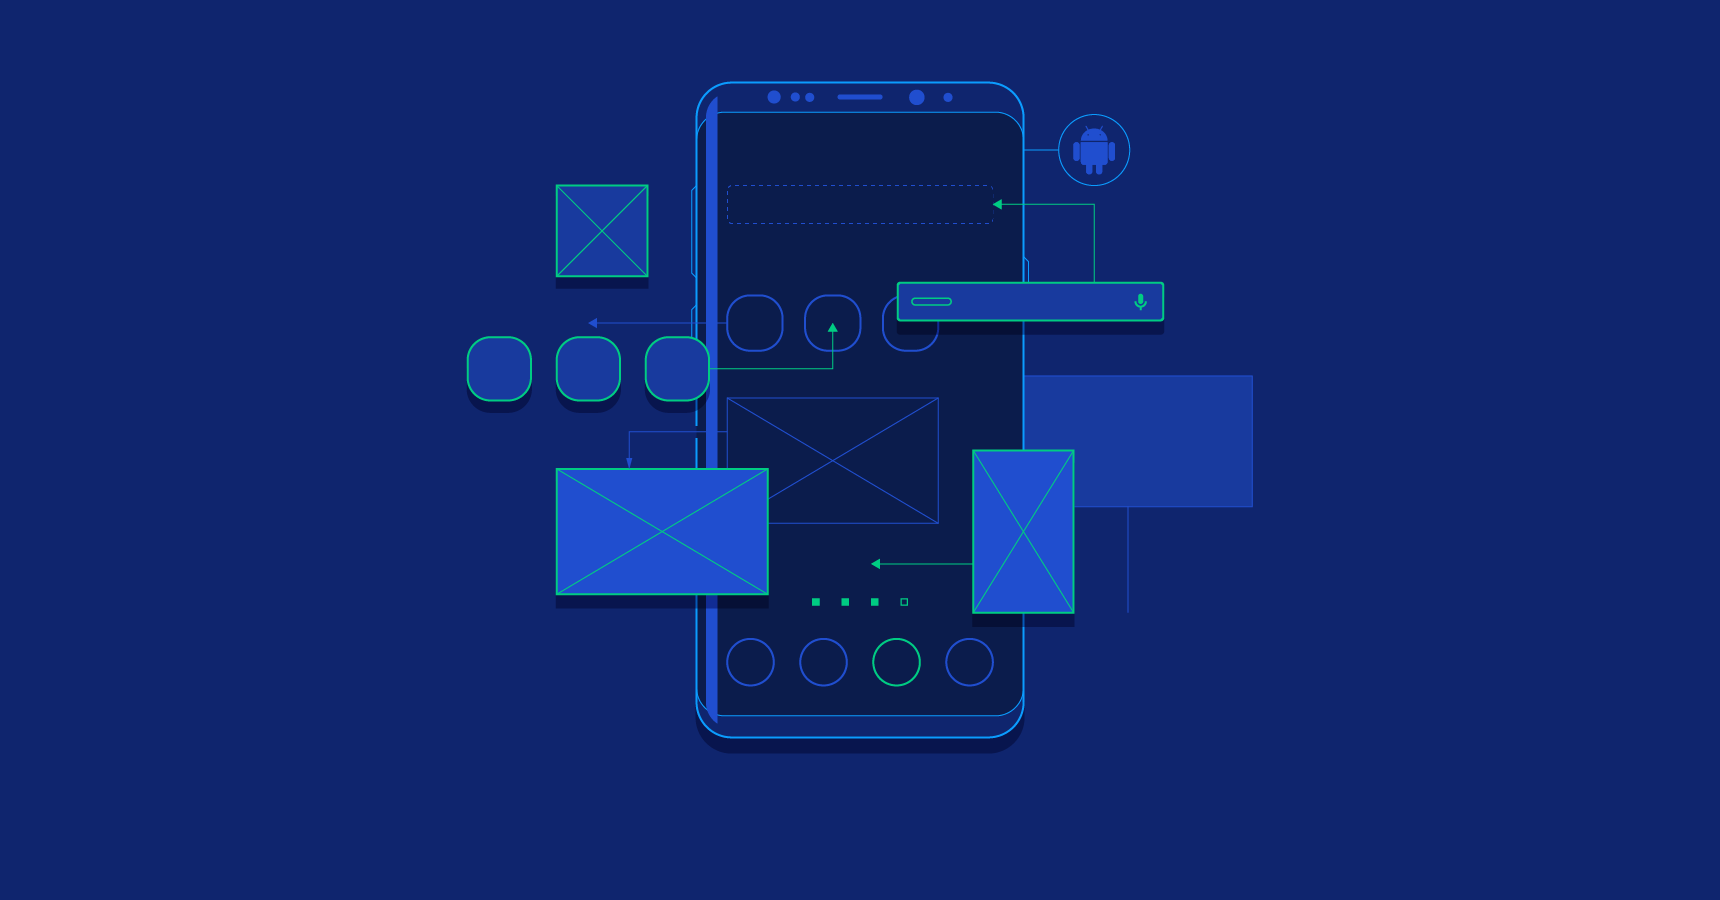 Android Customization - How to Create Custom Android UI